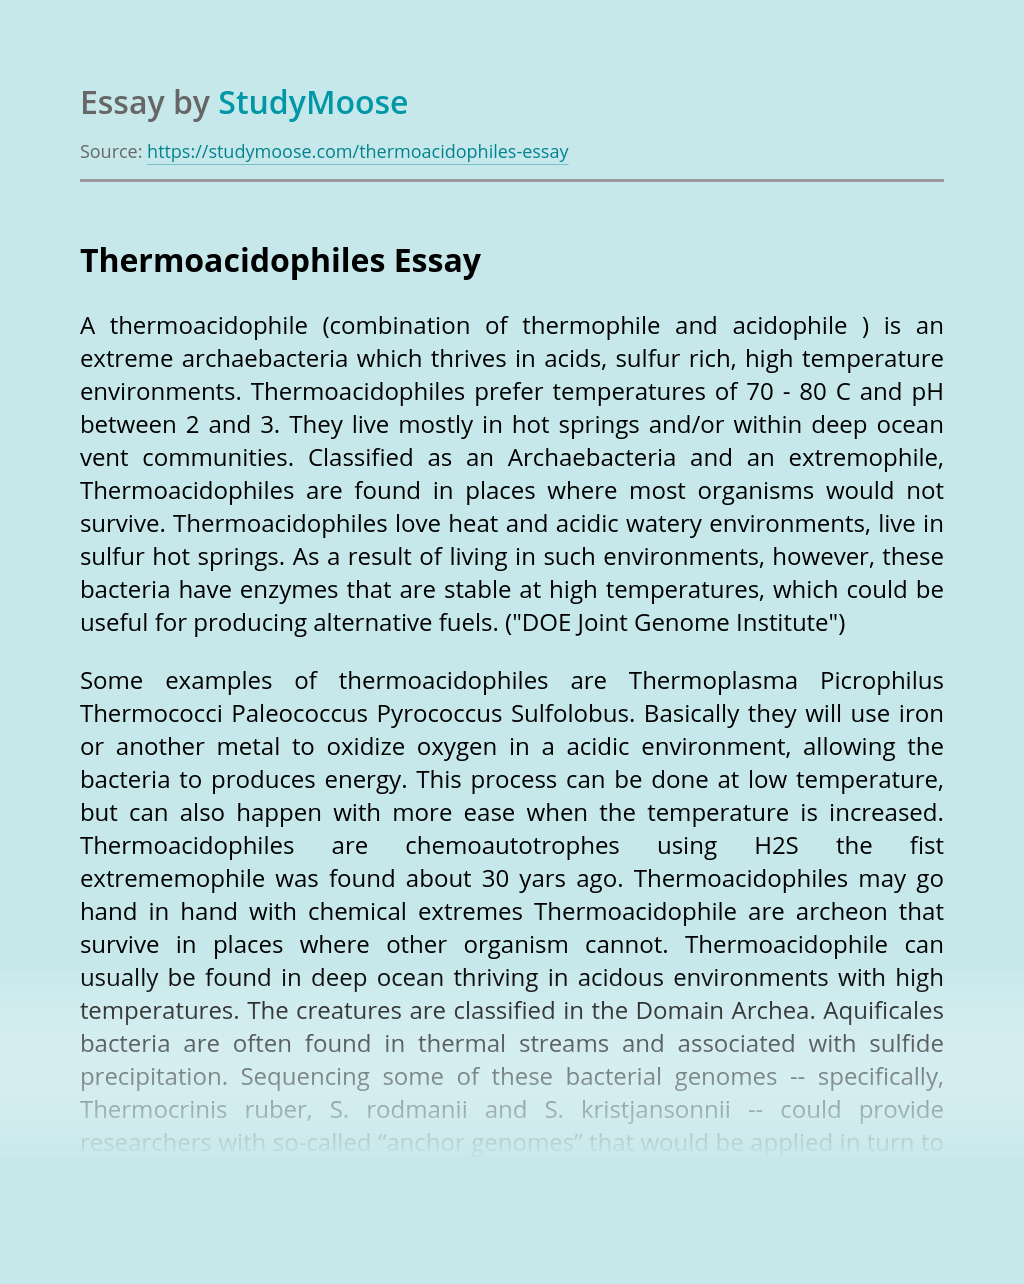 A Thermoacidophile - Combination of Thermophile and Acidophile